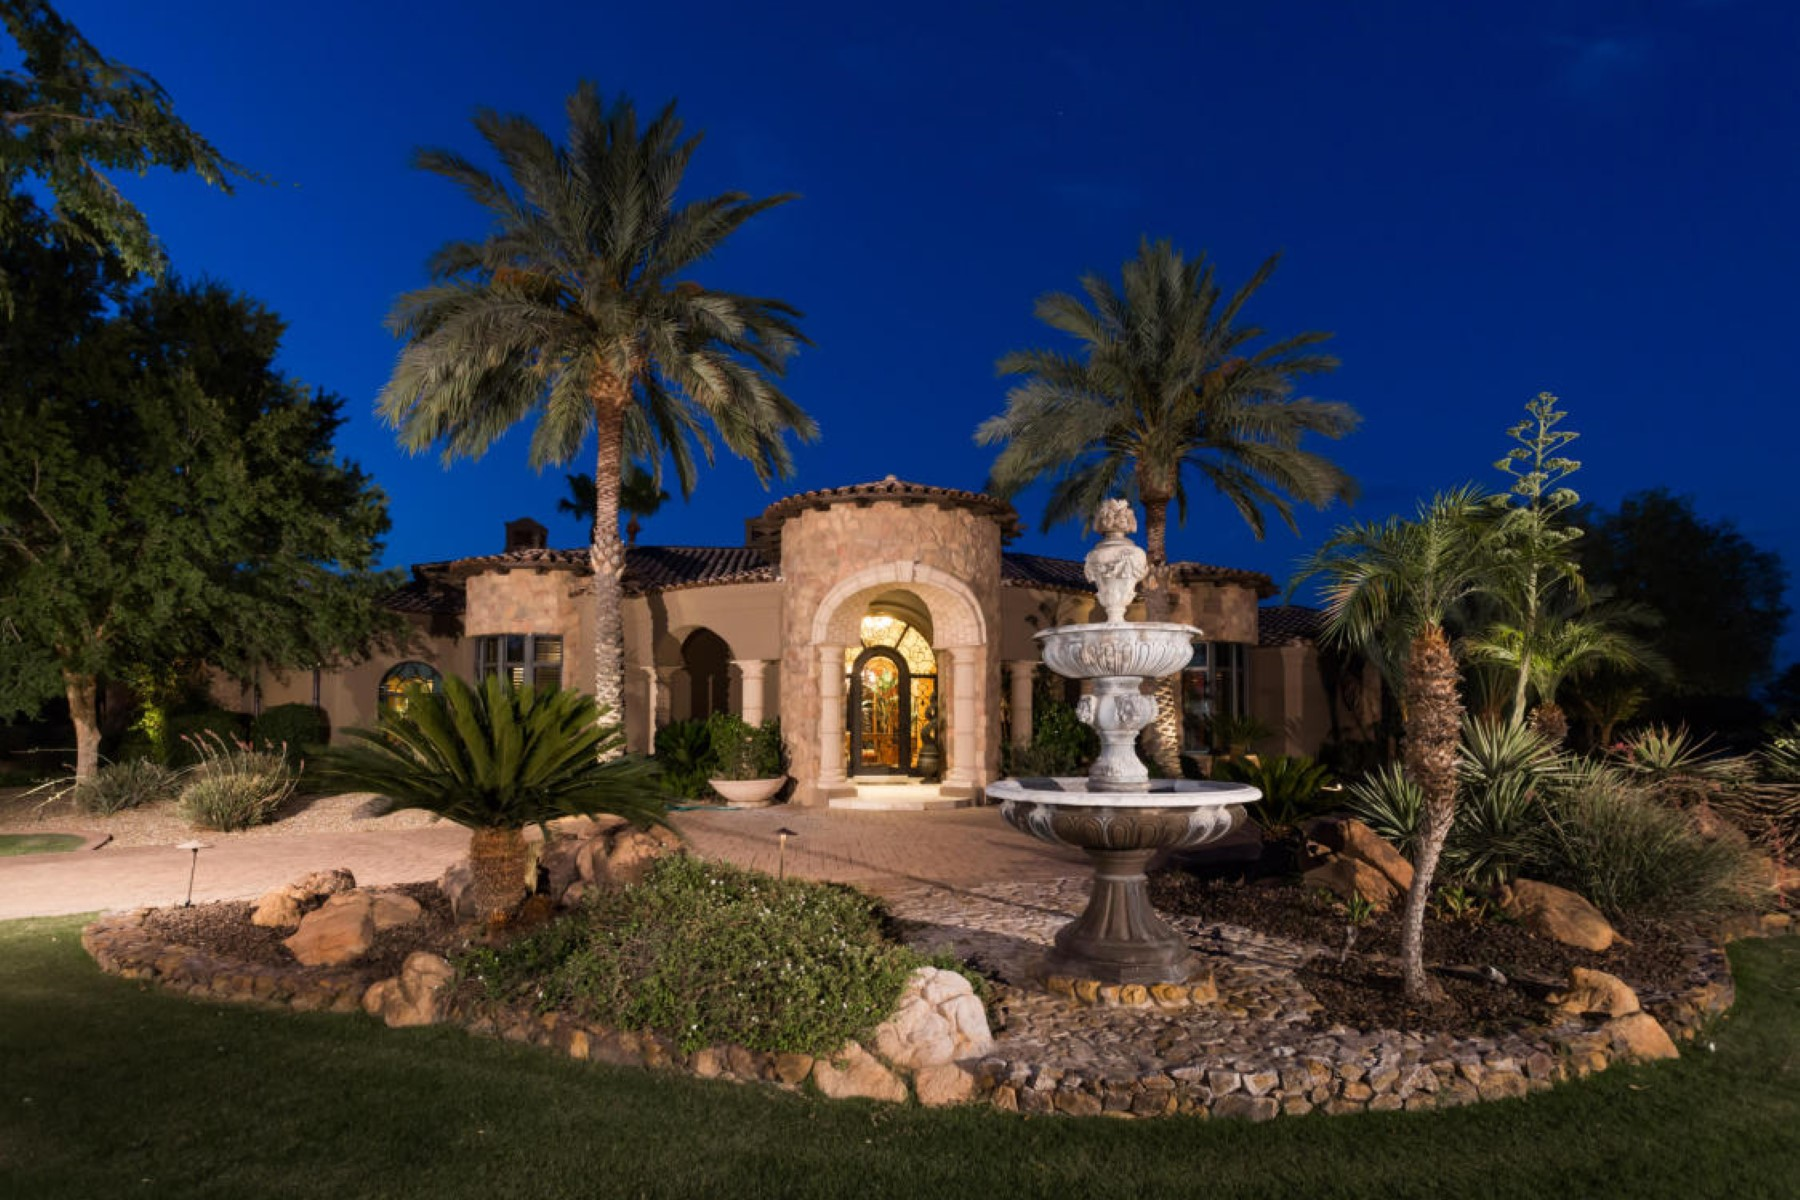 Moradia para Venda às Gorgeous Estate in Exclusive Guard Gated Paradise Valley Community 6615 N 66th Place Paradise Valley, Arizona, 85253 Estados Unidos